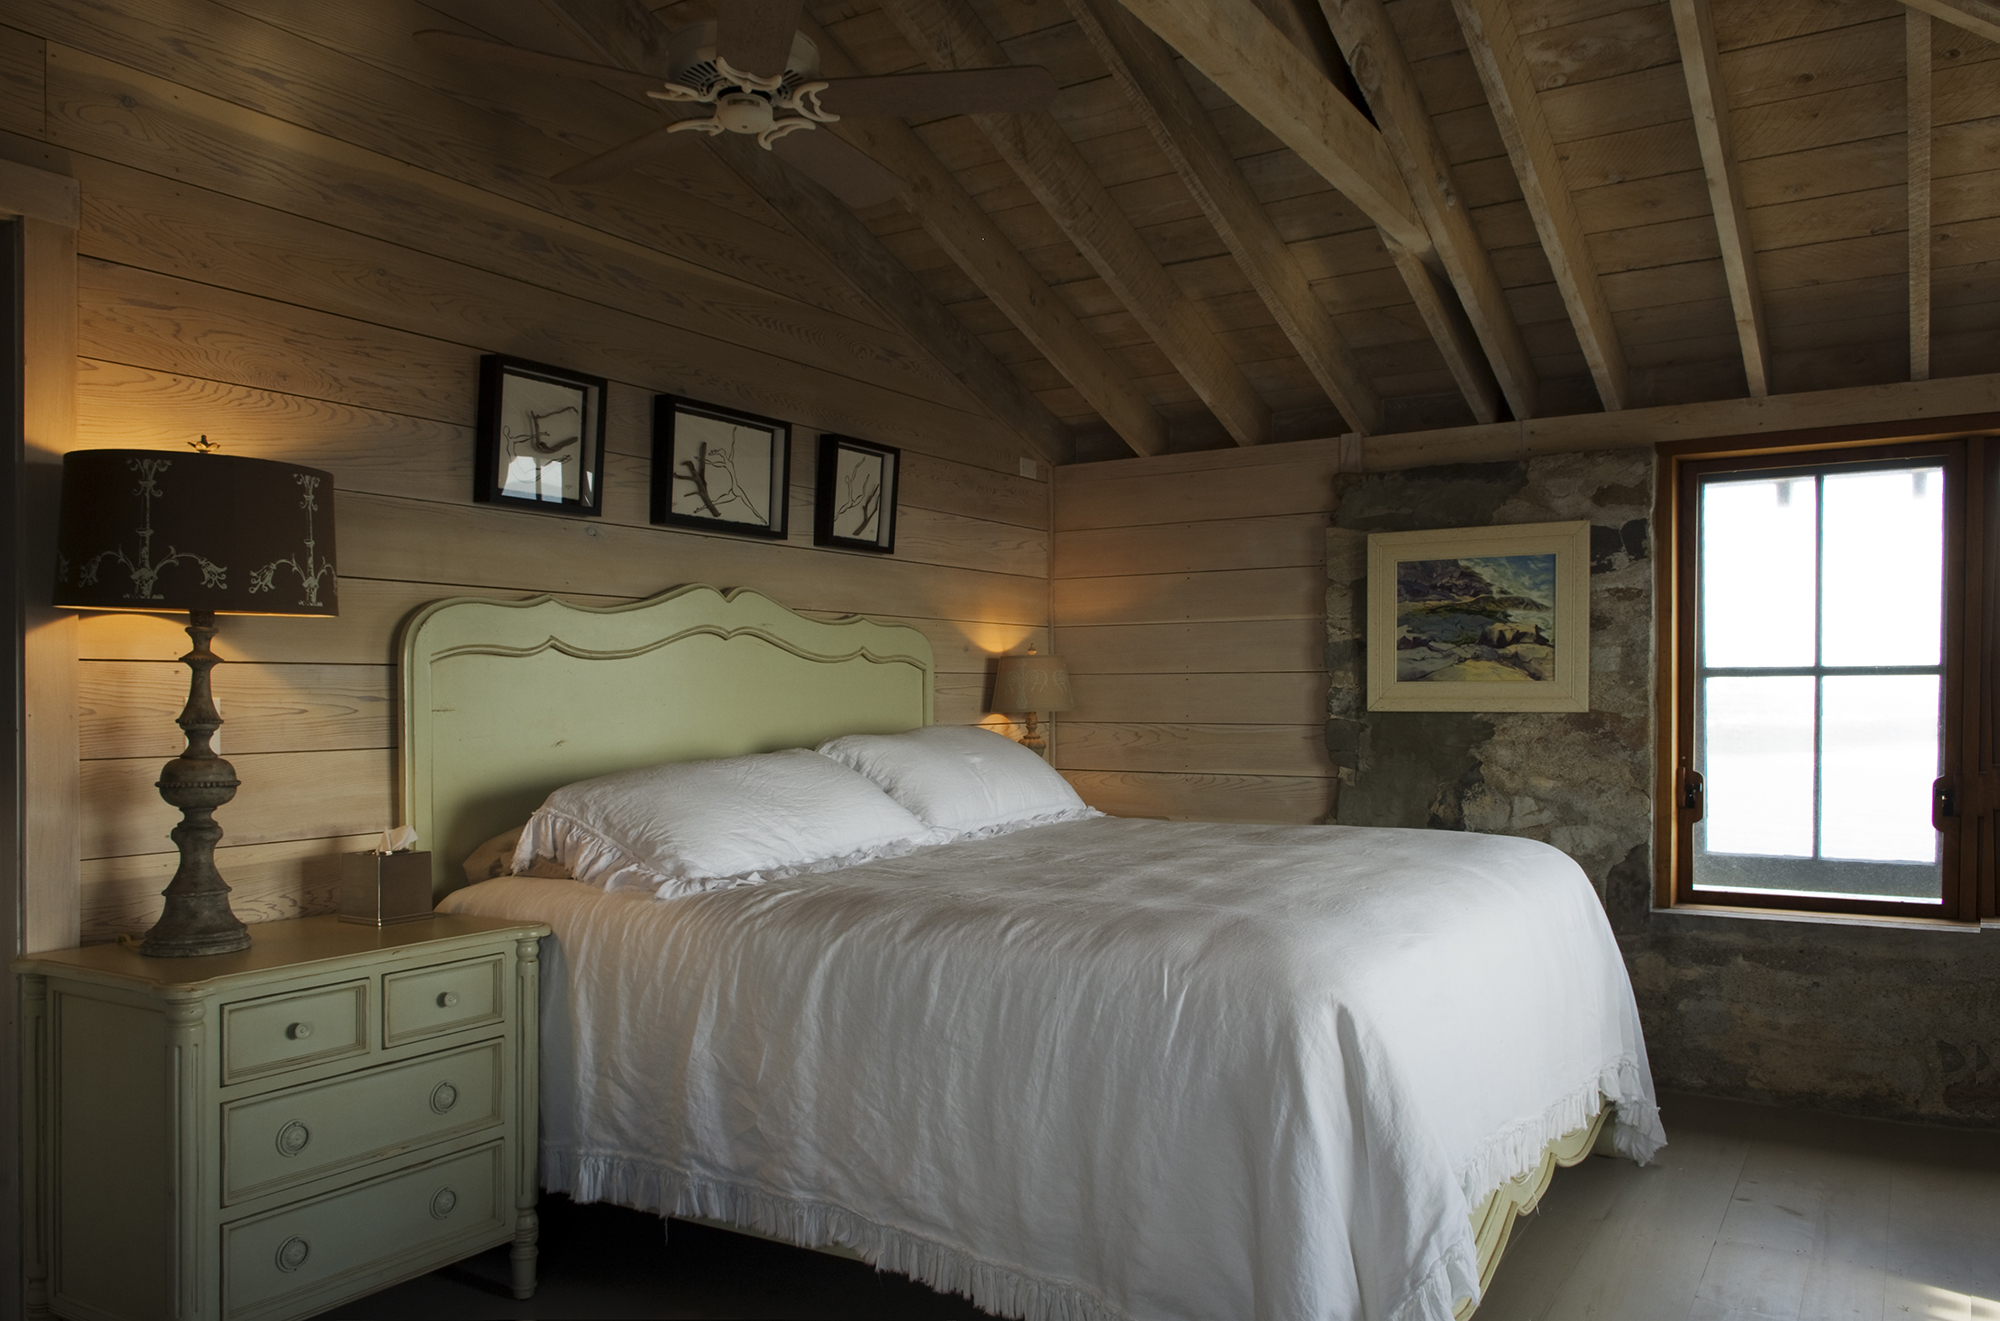 Vintage decor in the bedroom at Hunting Island Cottage